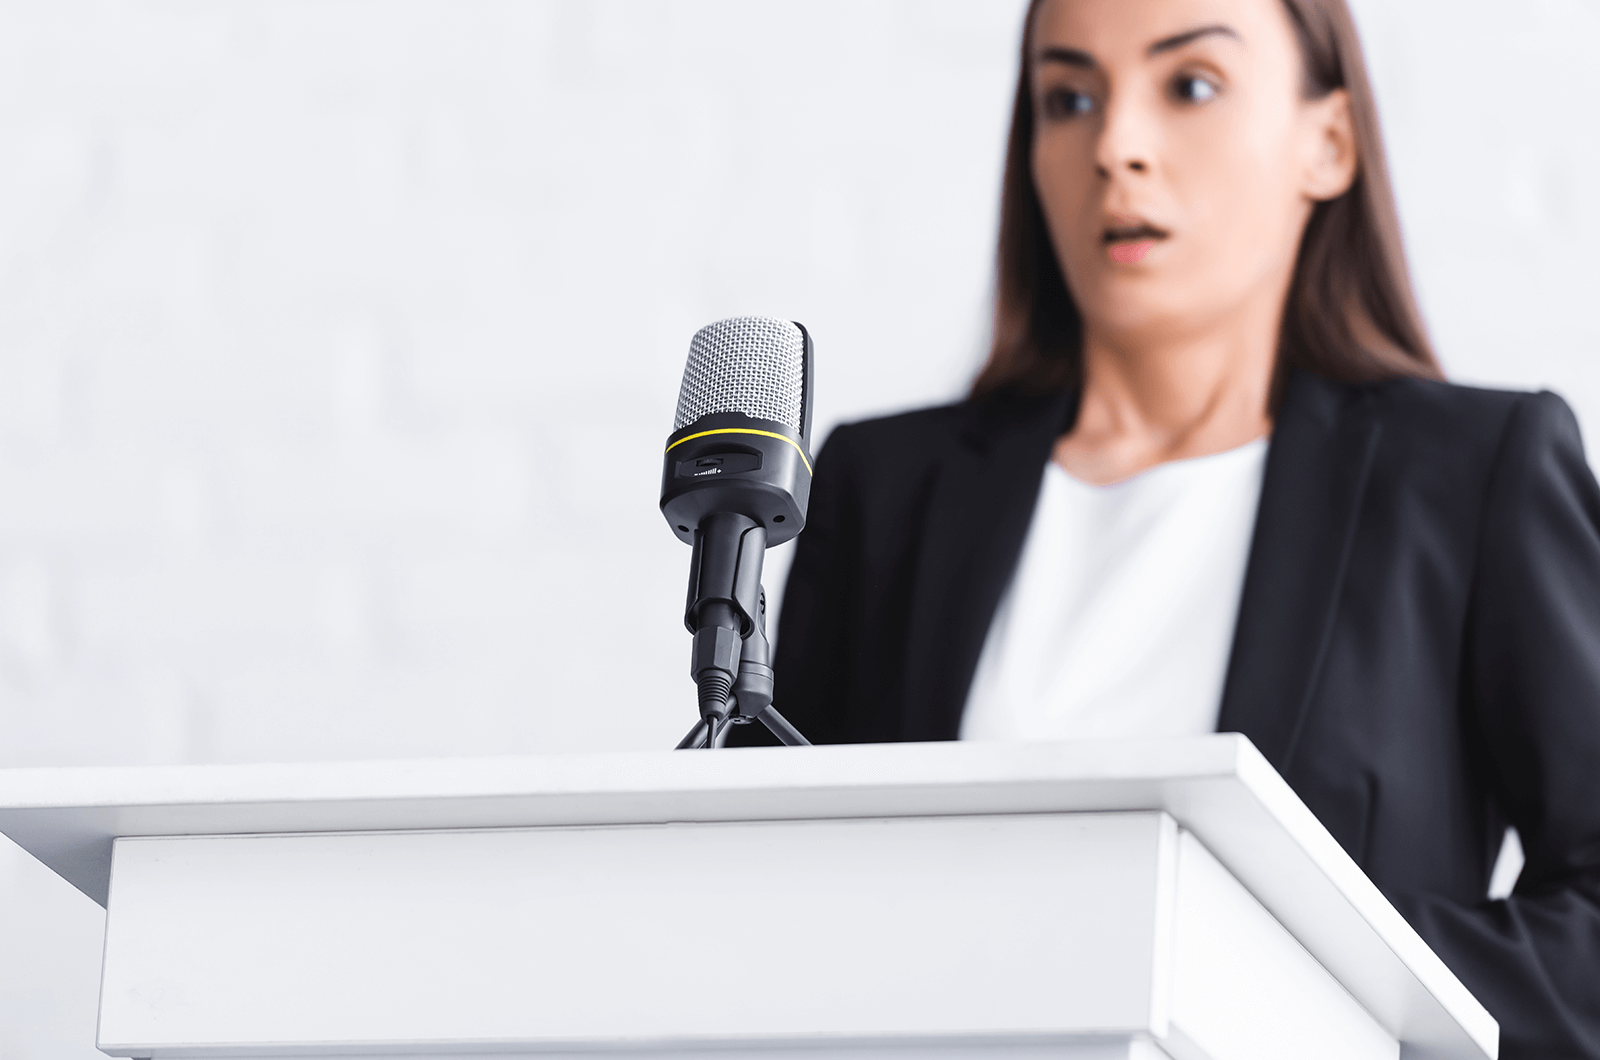 Woman standing at lectern looking scared